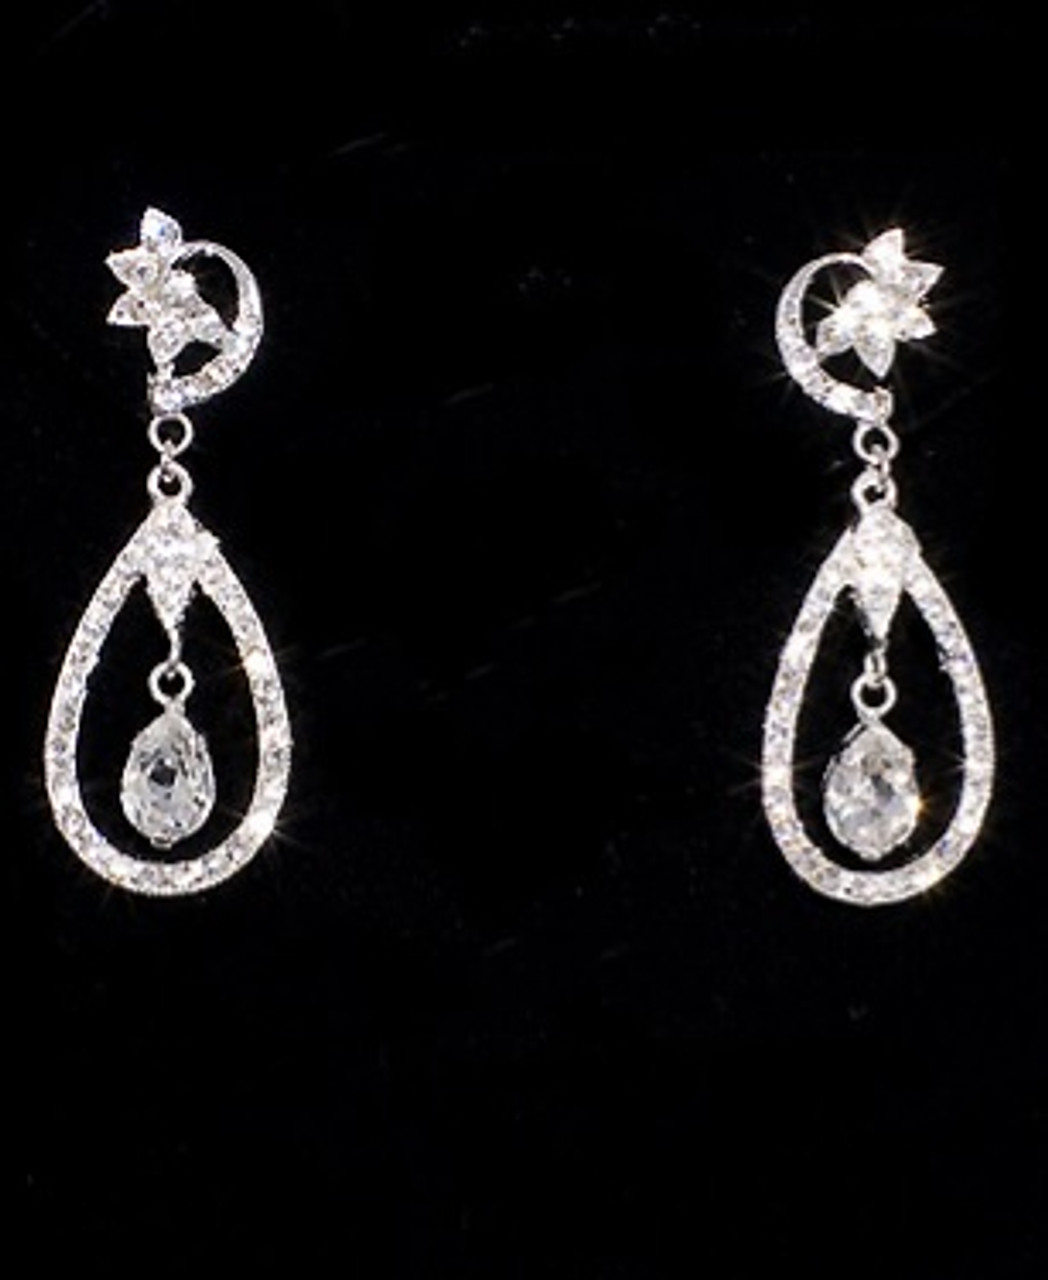 Bel aire bridal earrings ea220 wedding jewelry for Bel aire bridal jewelry